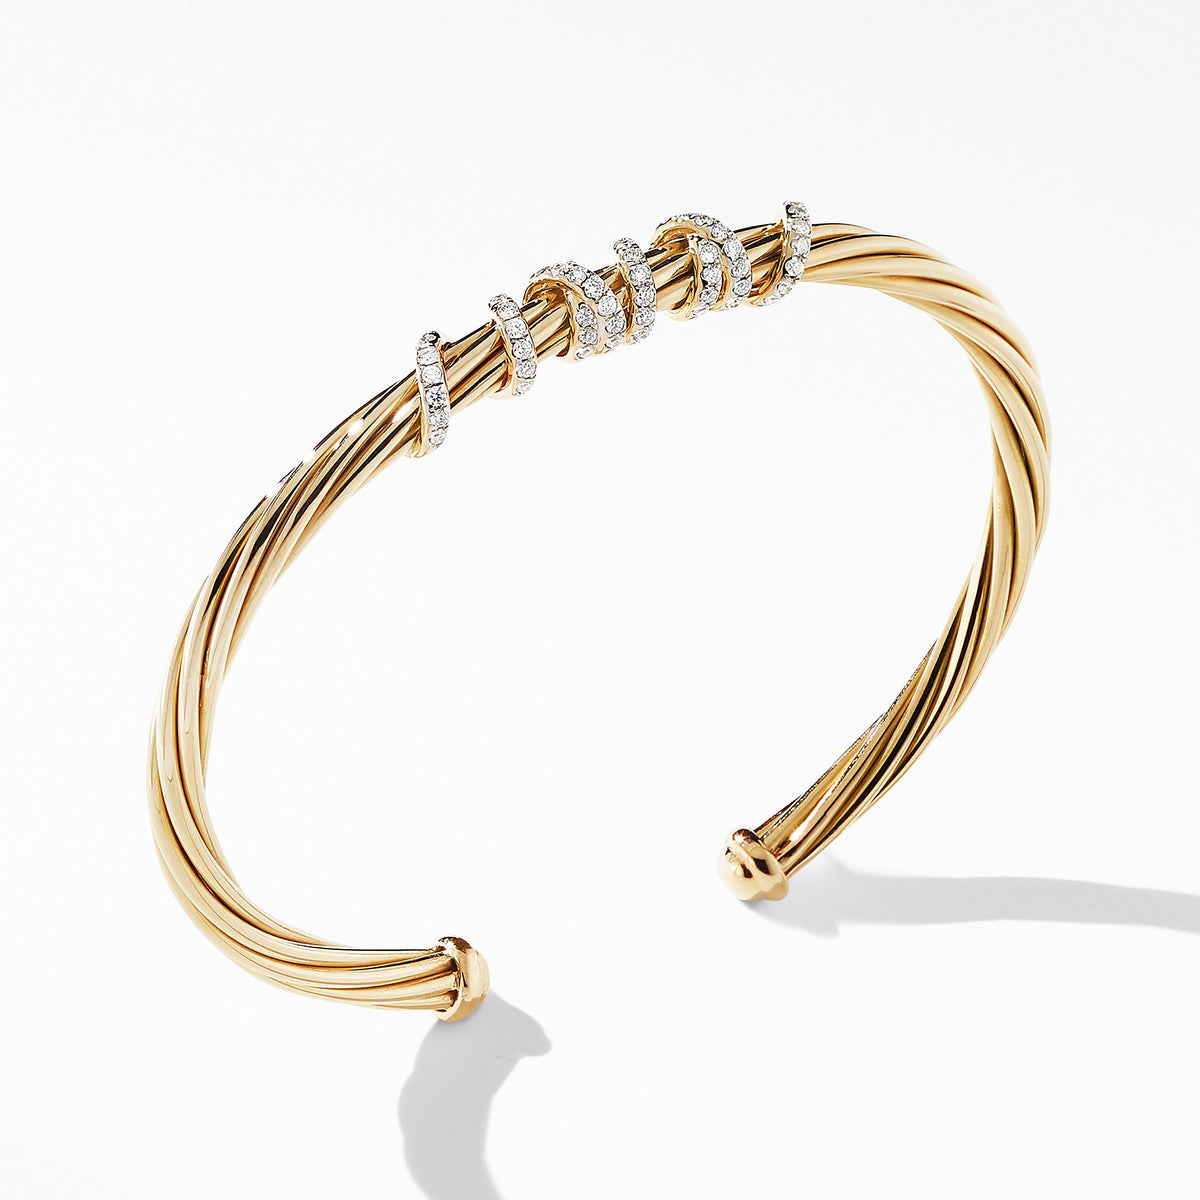 Helena Center Station Bracelet in 18K Yellow Gold with Diamonds